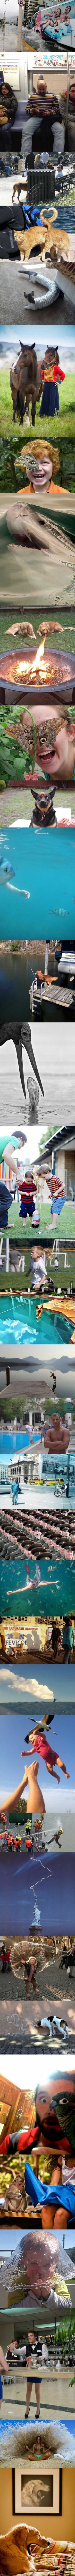 Perfectly timed pics